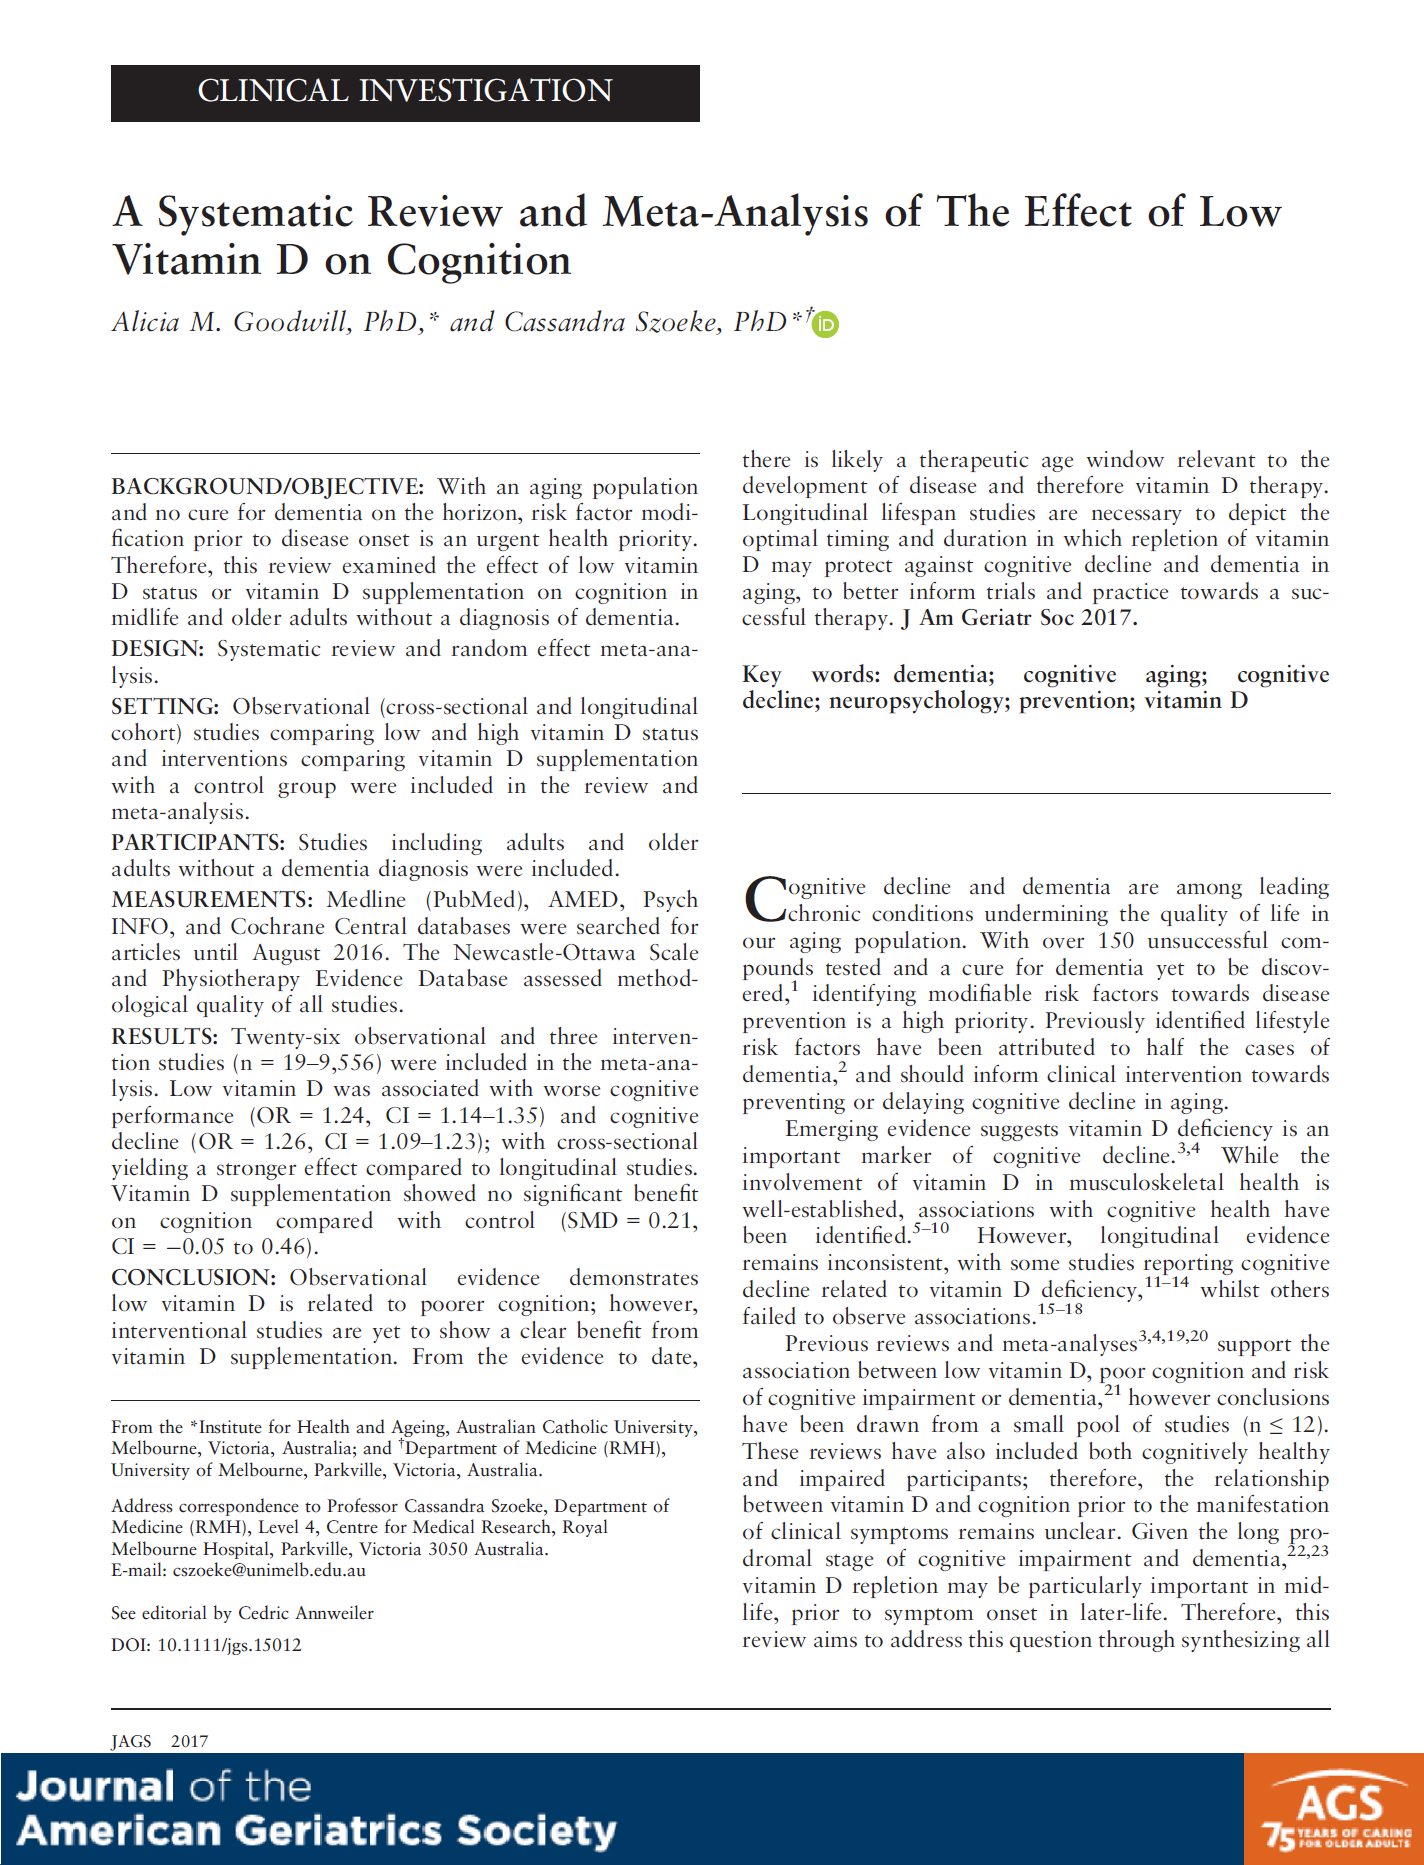 A Systematic Review and Meta-Analysis of The Effect of Low Vitamin D on Cognition - This review examined the effect of low vitamin D status or vitamin D supplementation on cognition in midlife and older adults without a diagnosis of dementia.Medline (PubMed), AMED, Psych INFO, and Cochrane Central databases were searched for articles until August 2016.Observational evidence demonstrates low vitamin D is related to poorer cognition; however,interventional studies are yet to show a clear benefit from vitamin D supplementation.Citation: Goodwill, A.M., et al (2017).A systematic review and meta-analysis of the effect of low vitamin D on cognition.Journal of the American Geriatrics Society, in press, doi:10.1111/jgs.15012.